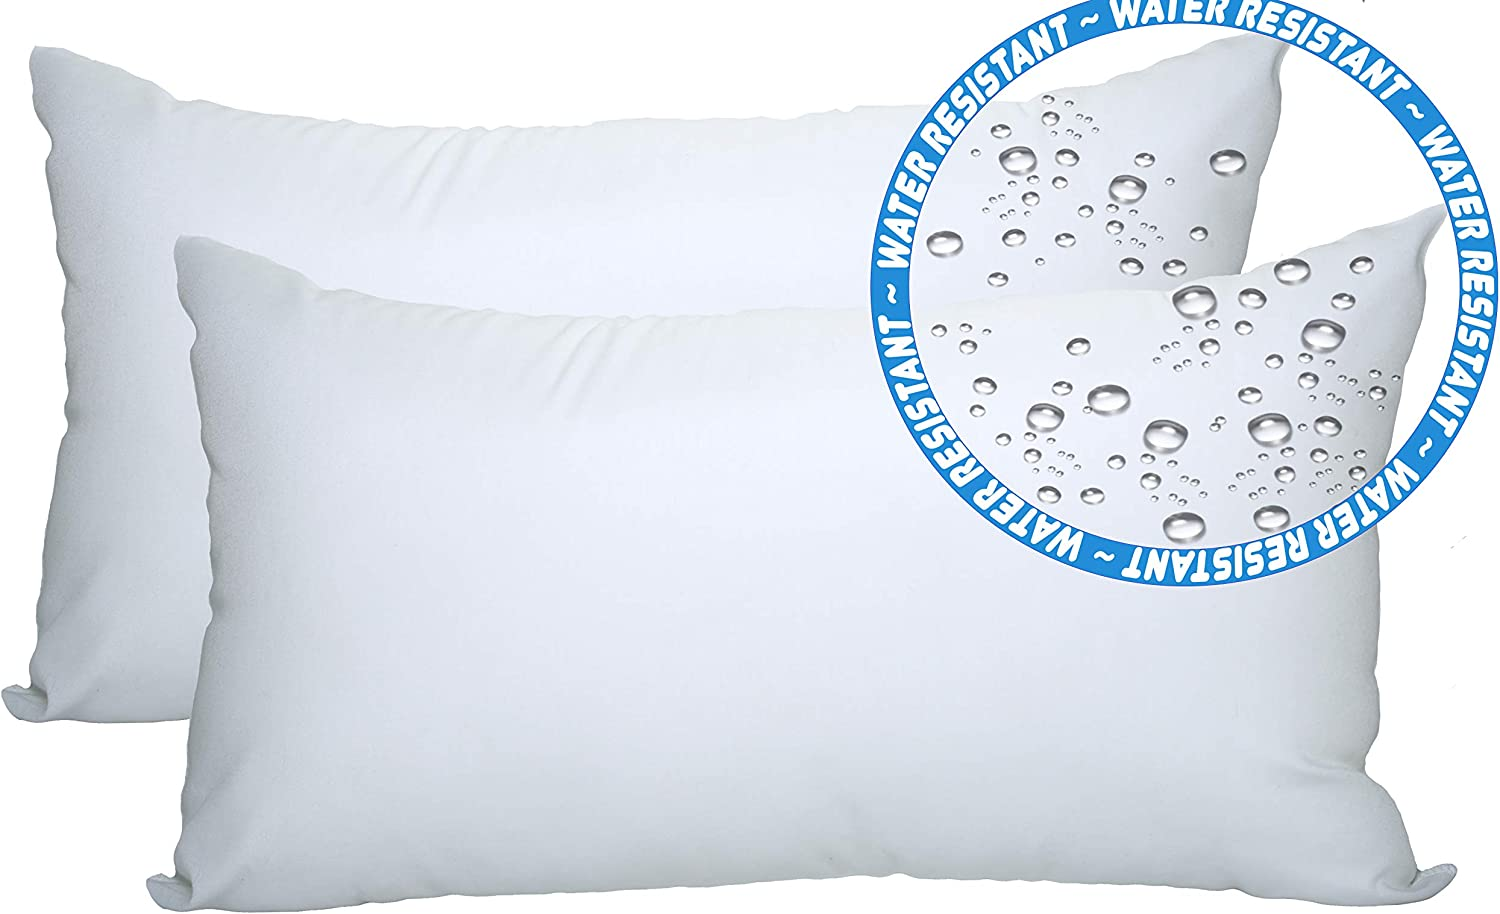 Amazon Com Foamily 2 Pack 12 X 20 Premium Outdoor Water And Mold Resistant Hypoallergenic Stuffer Pillow Throw Inserts Sham Square Form Standard White Garden Outdoor